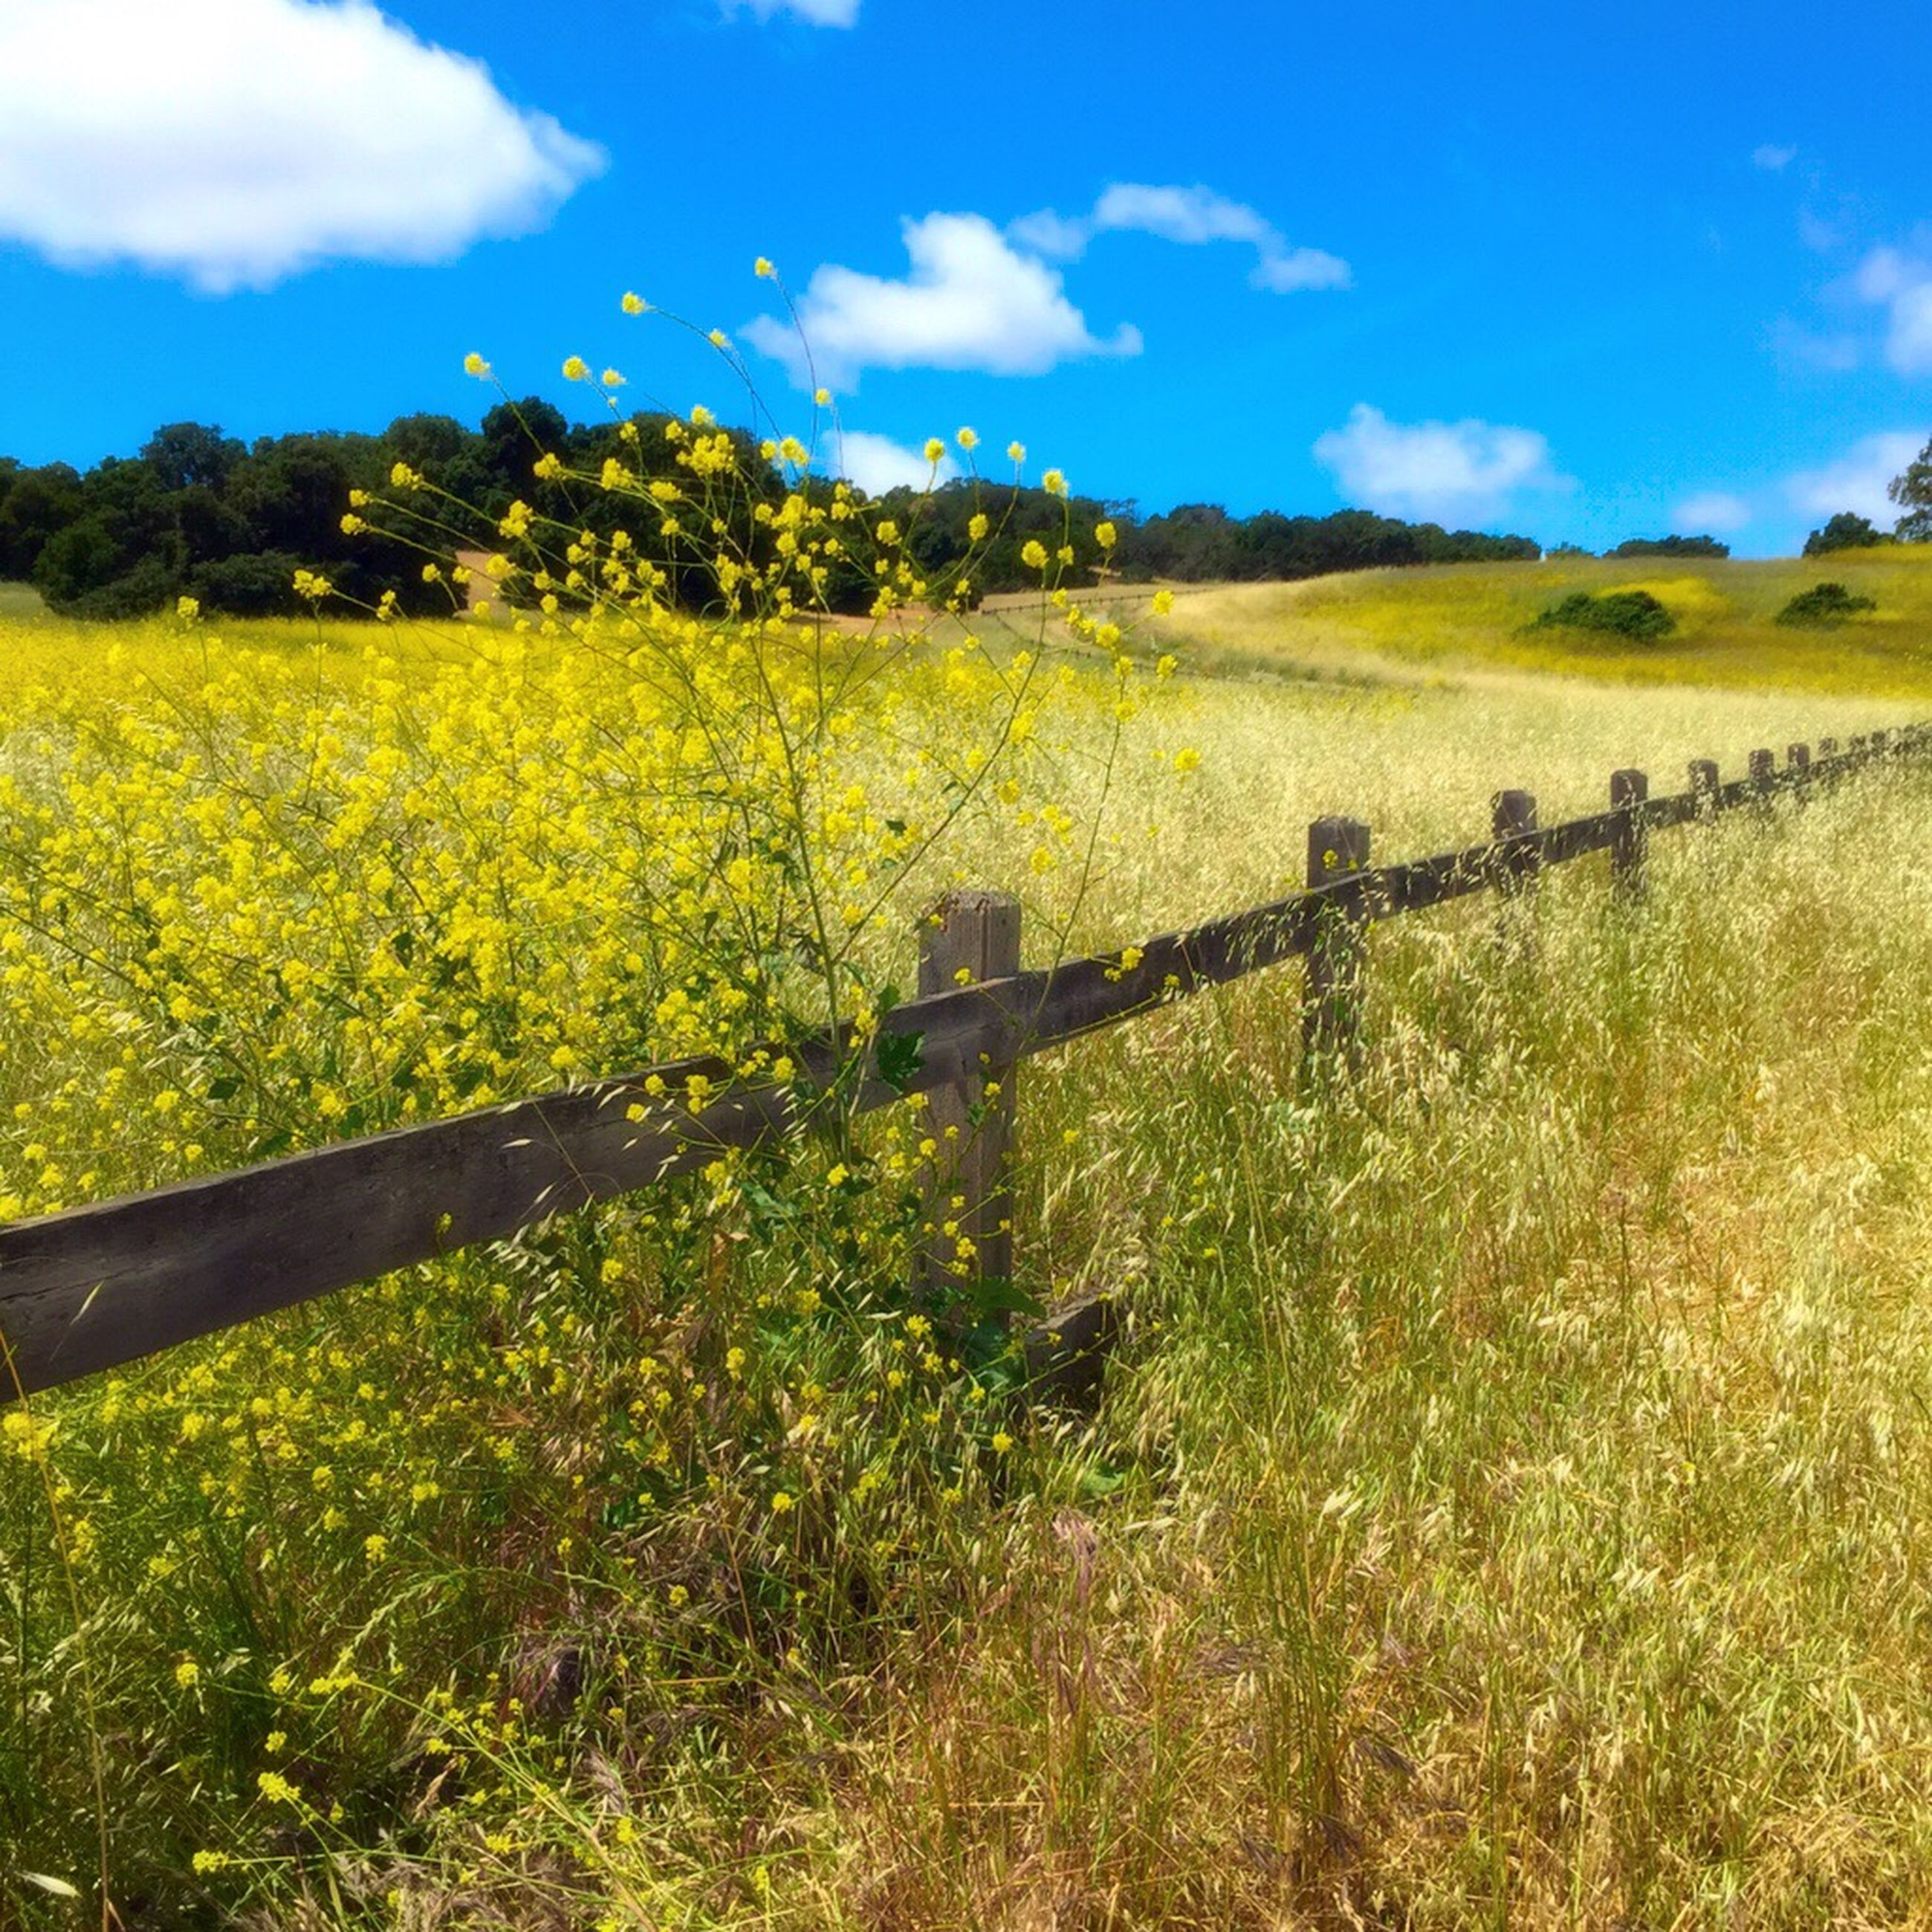 field, growth, sky, landscape, beauty in nature, tranquility, flower, tranquil scene, nature, grass, rural scene, plant, scenics, agriculture, green color, fence, grassy, yellow, cloud - sky, farm